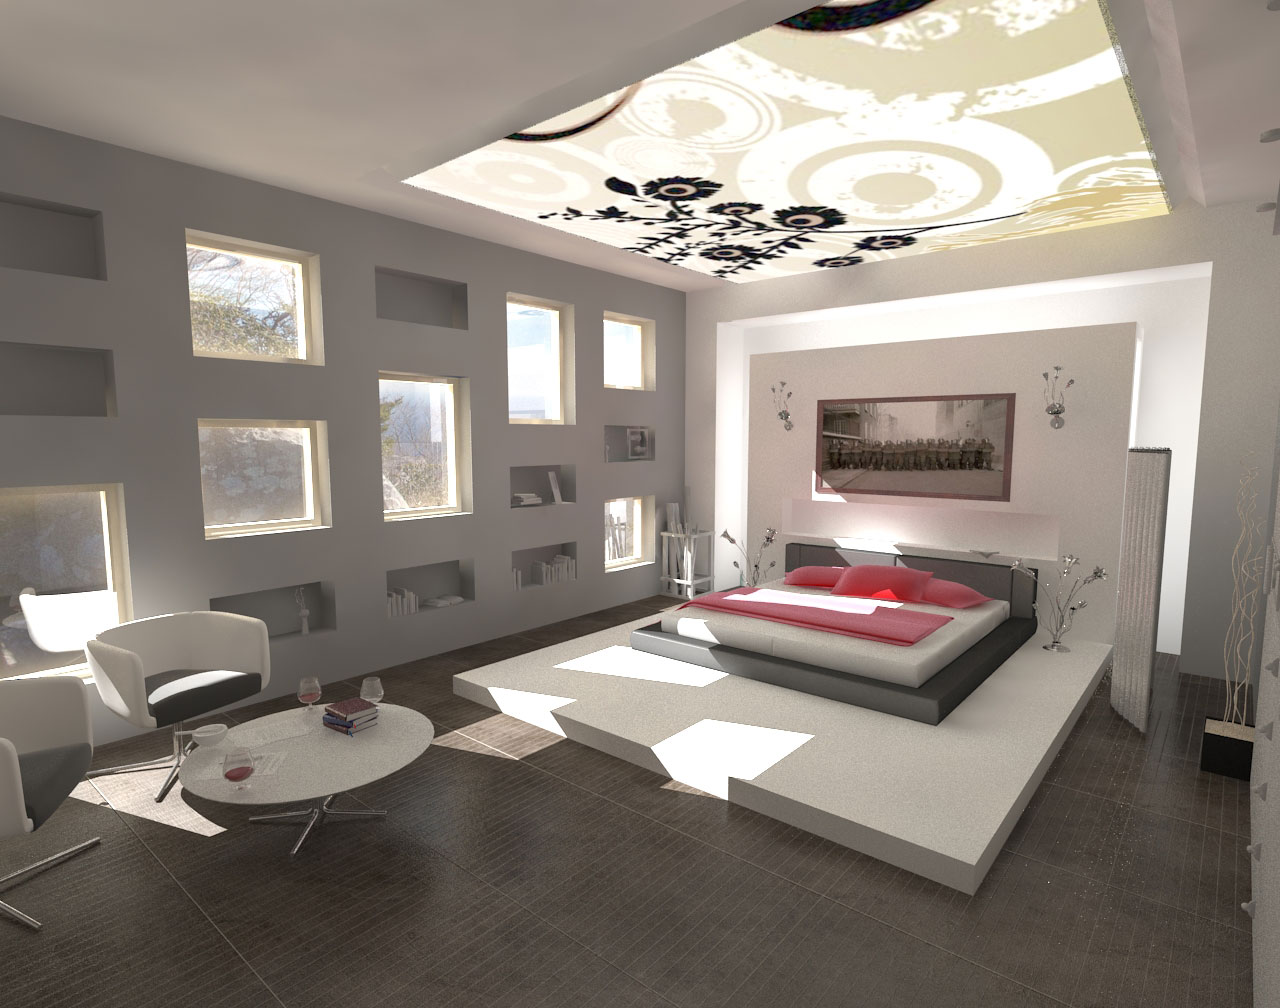 decorations minimalist design modern bedroom interior ForModern Bedroom Interior Designs